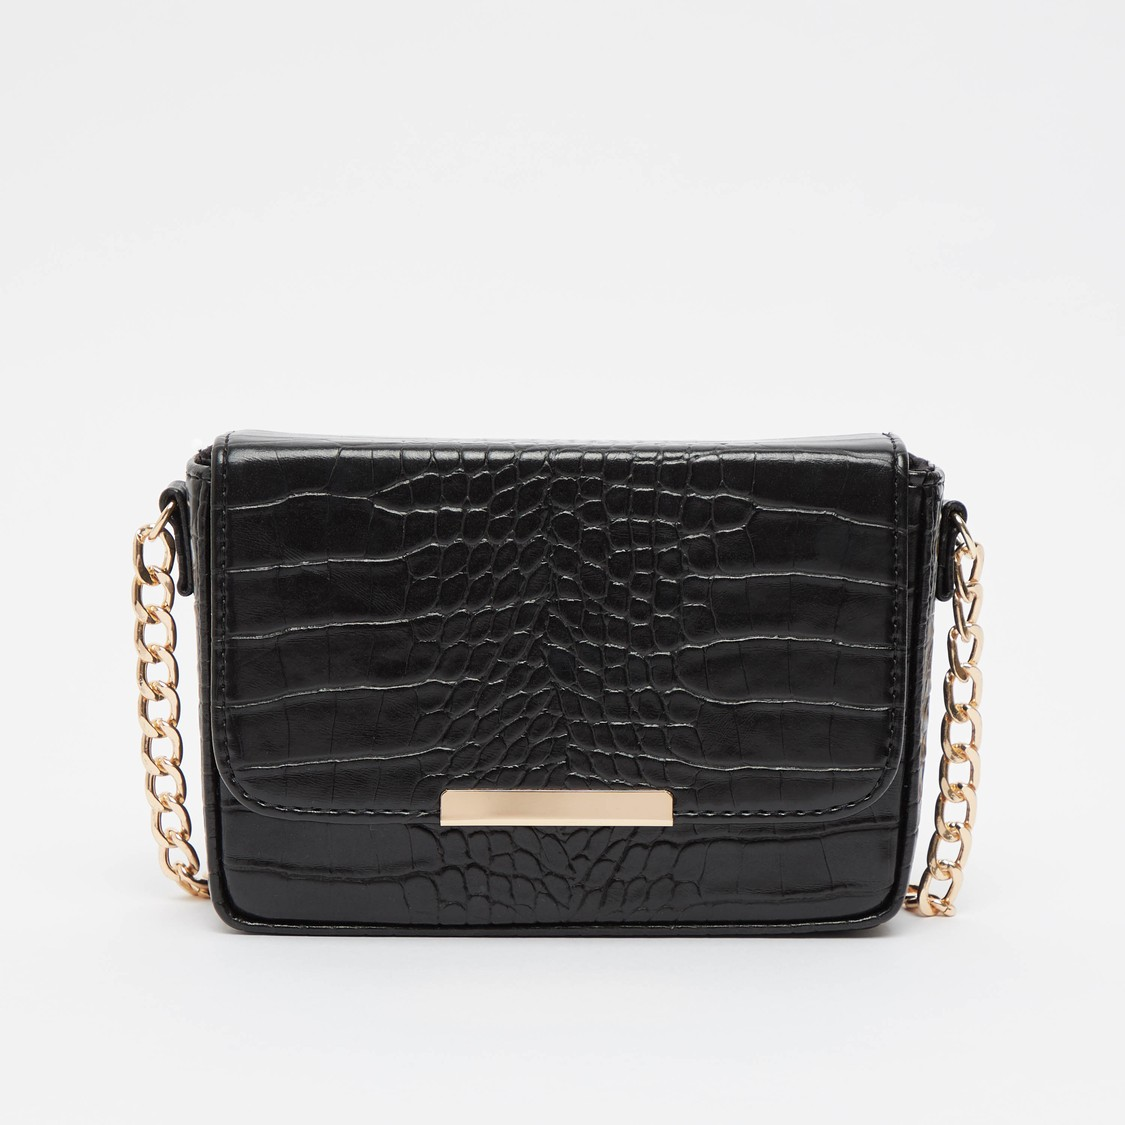 Crocodile Textured Crossbody Bag with Chain-Link Strap